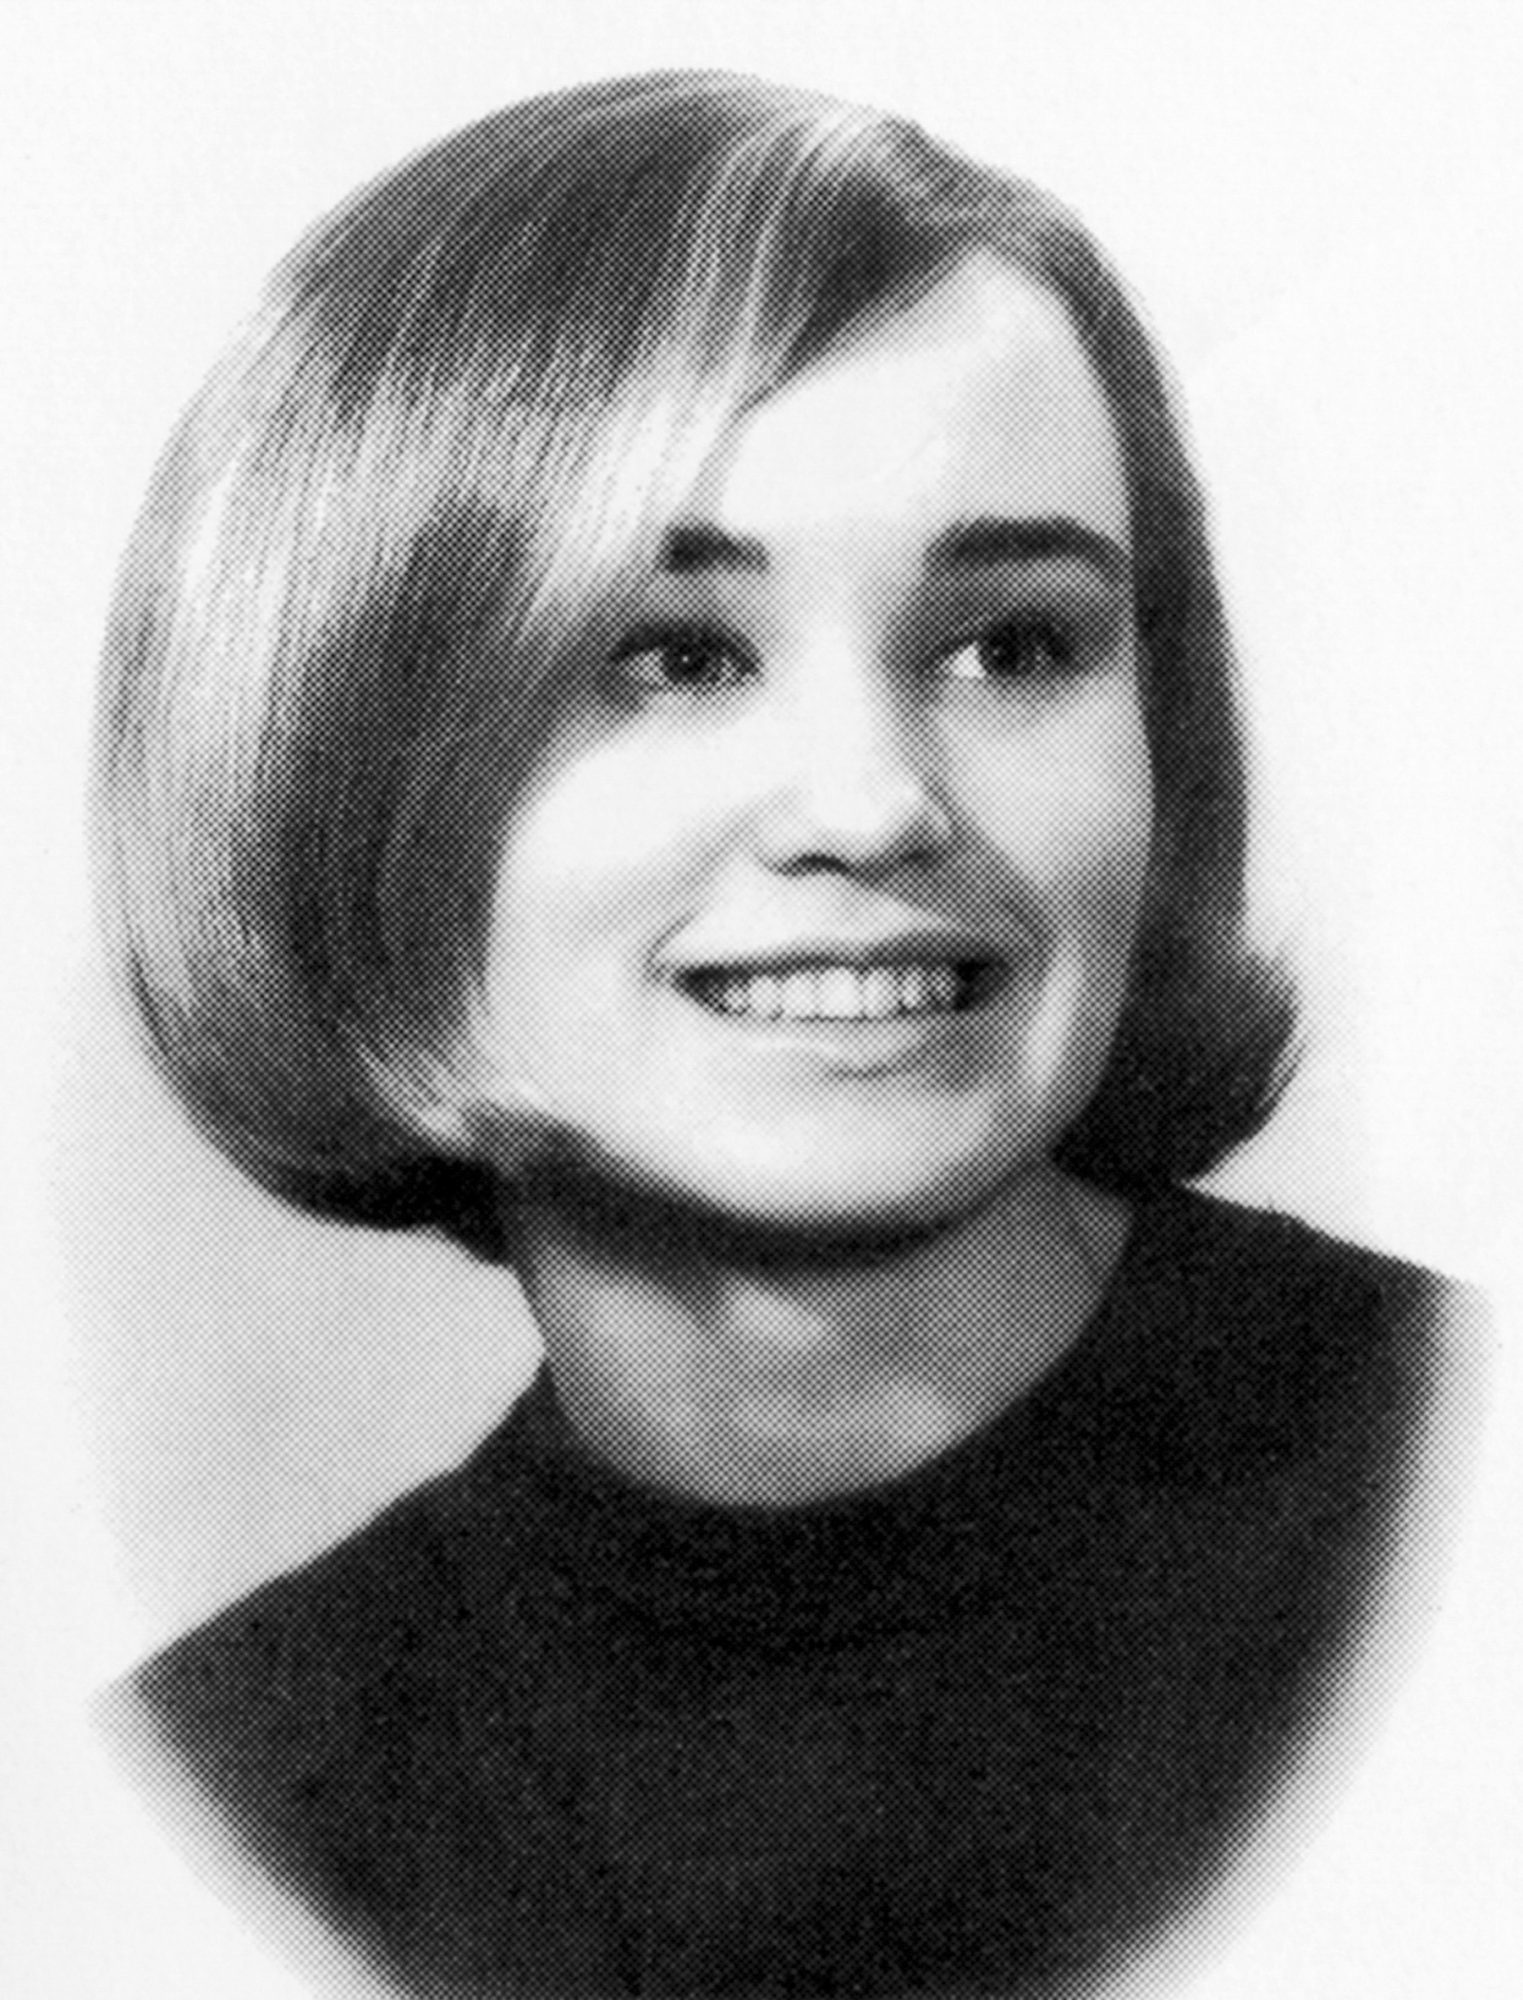 Jessica Lange Senior Year 1967 Cloquet High School, Cloquet, MN Credit: Seth Poppel/Yearbook Library